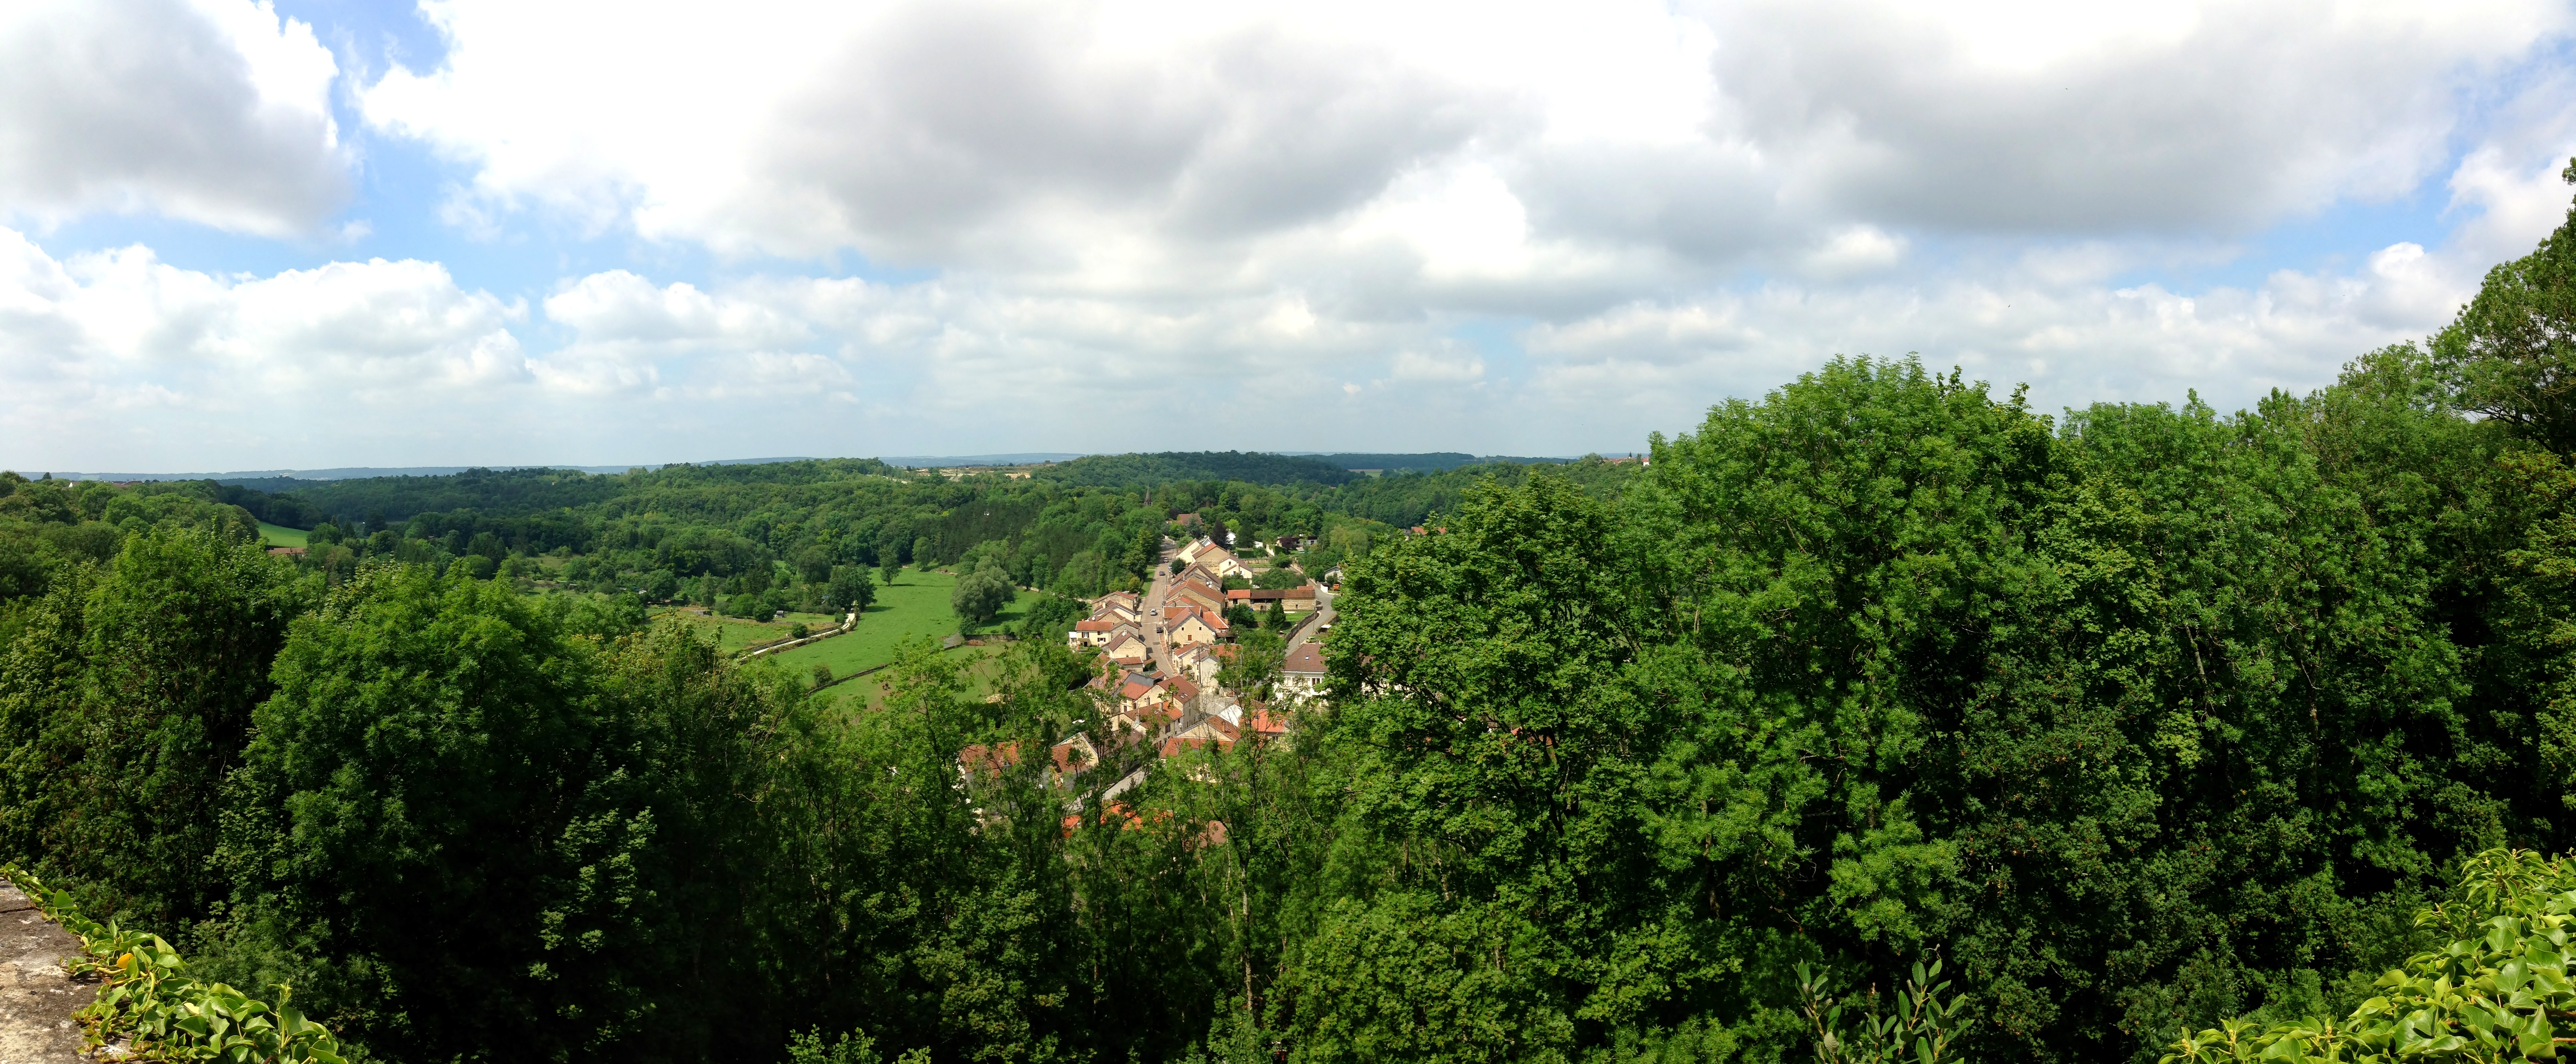 Views Over Downtown Chaumont from Chaumont Centre Ville